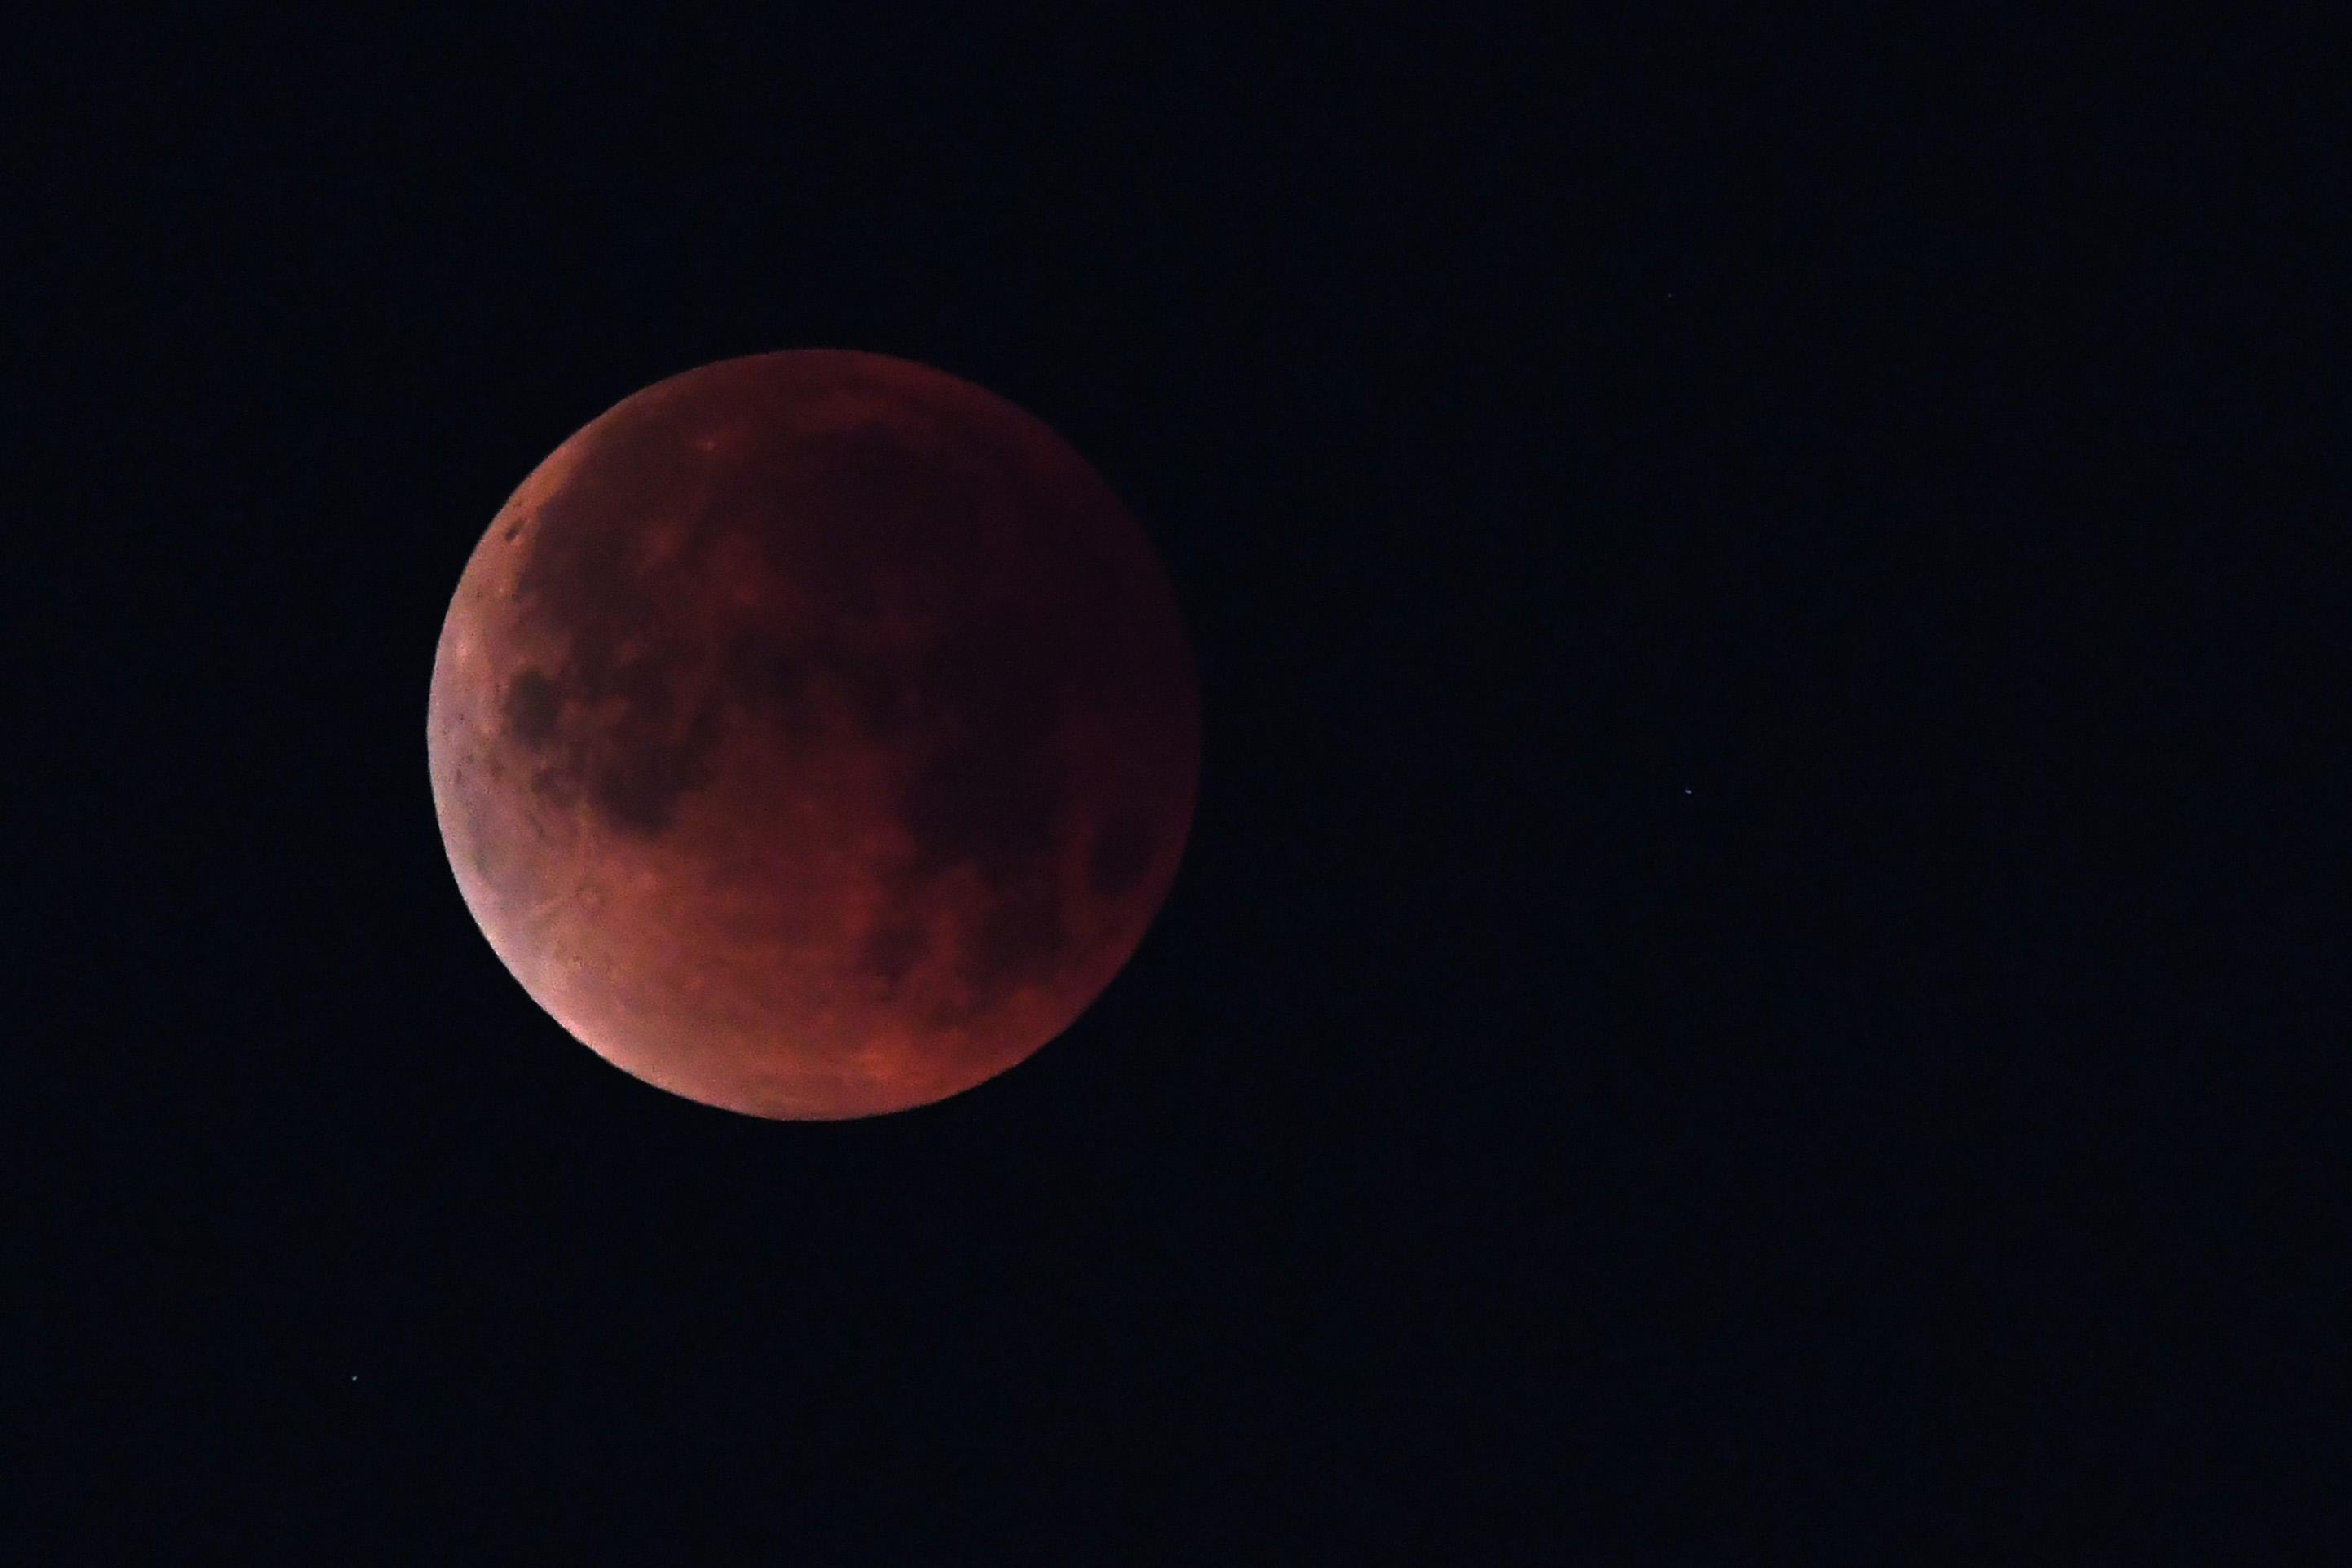 blood moon 2019 pst - photo #41